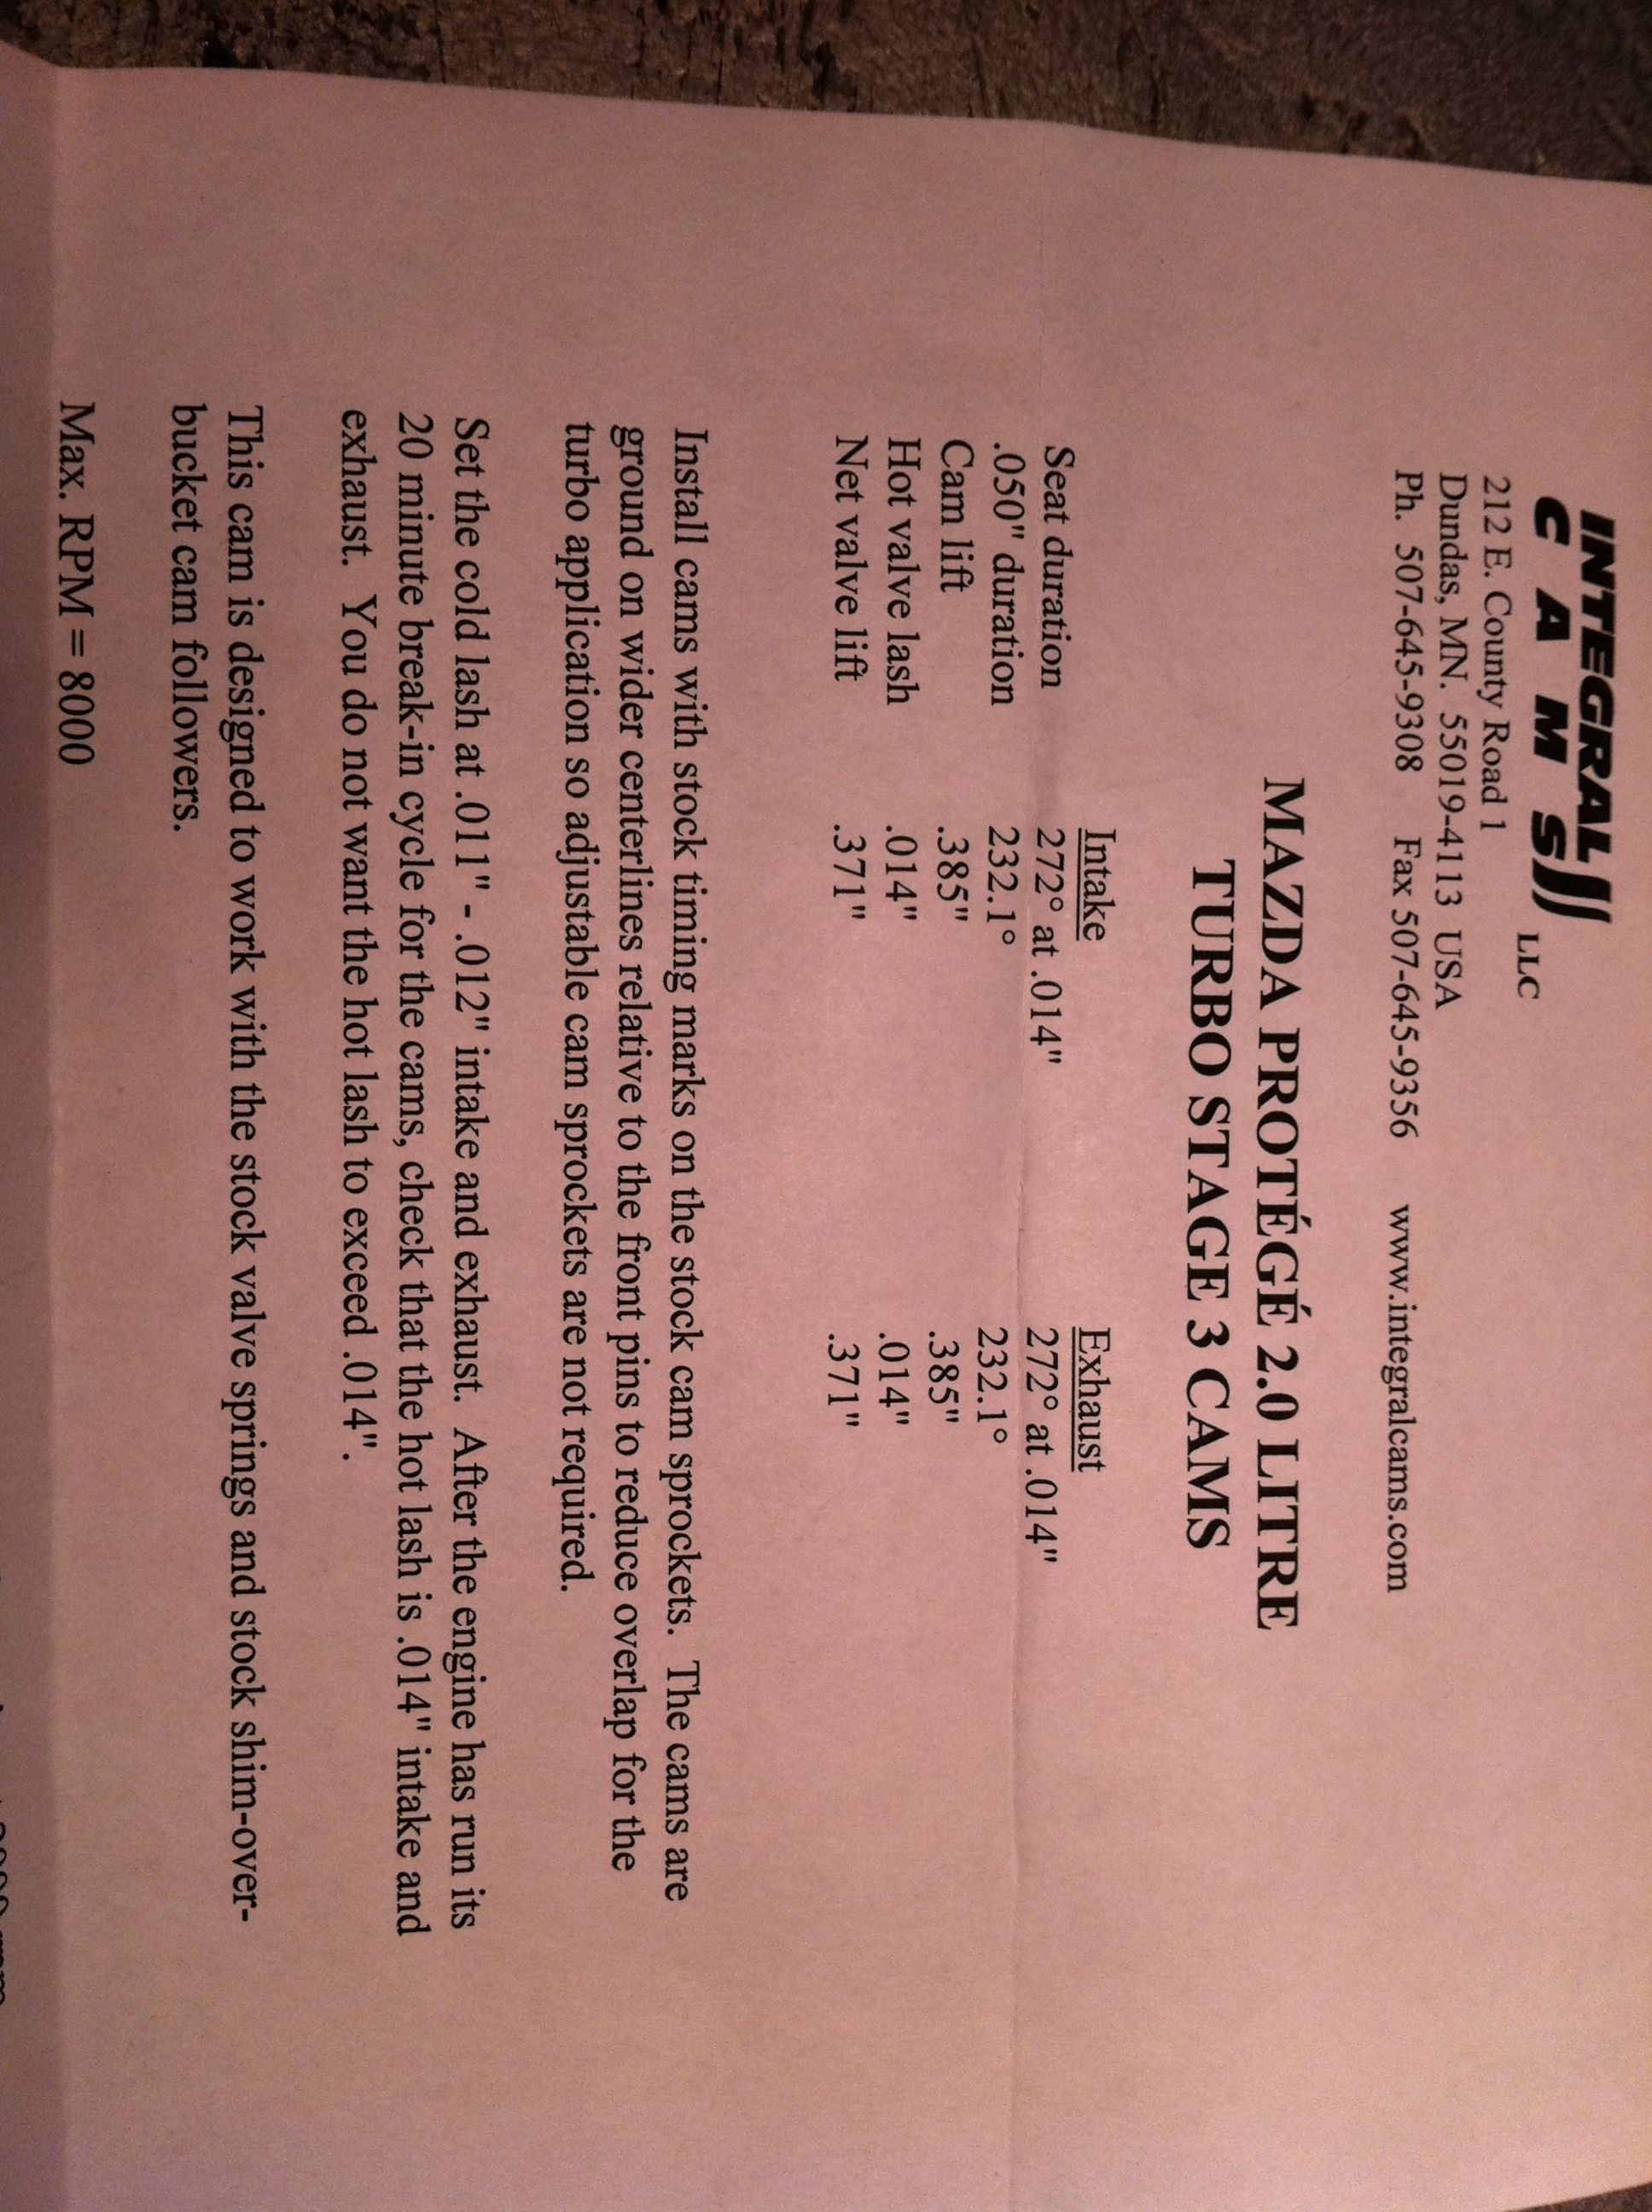 Maxx Mazdas 2011 Build Thread Archive Mazdas247 If You Run Out Of Room On The Starter Relay Quotbquot Post Install A Power